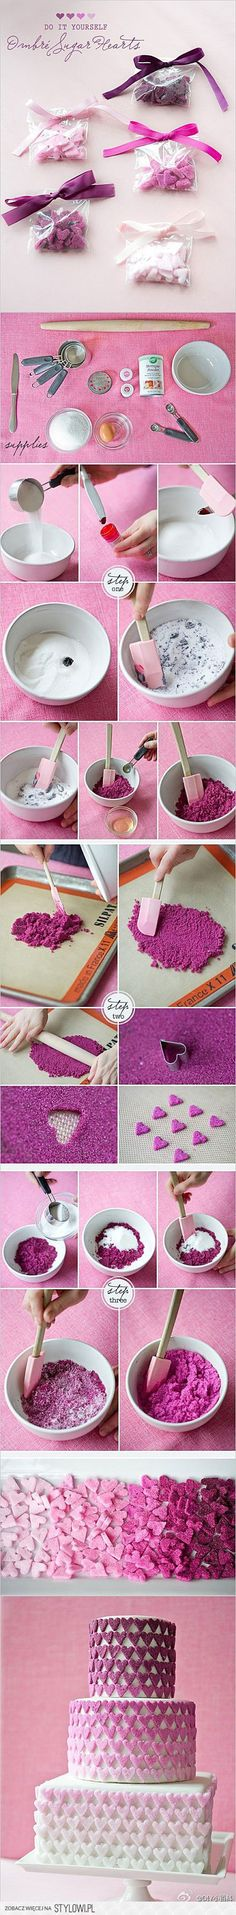 DIY sugar shapes... maybe ill do this today